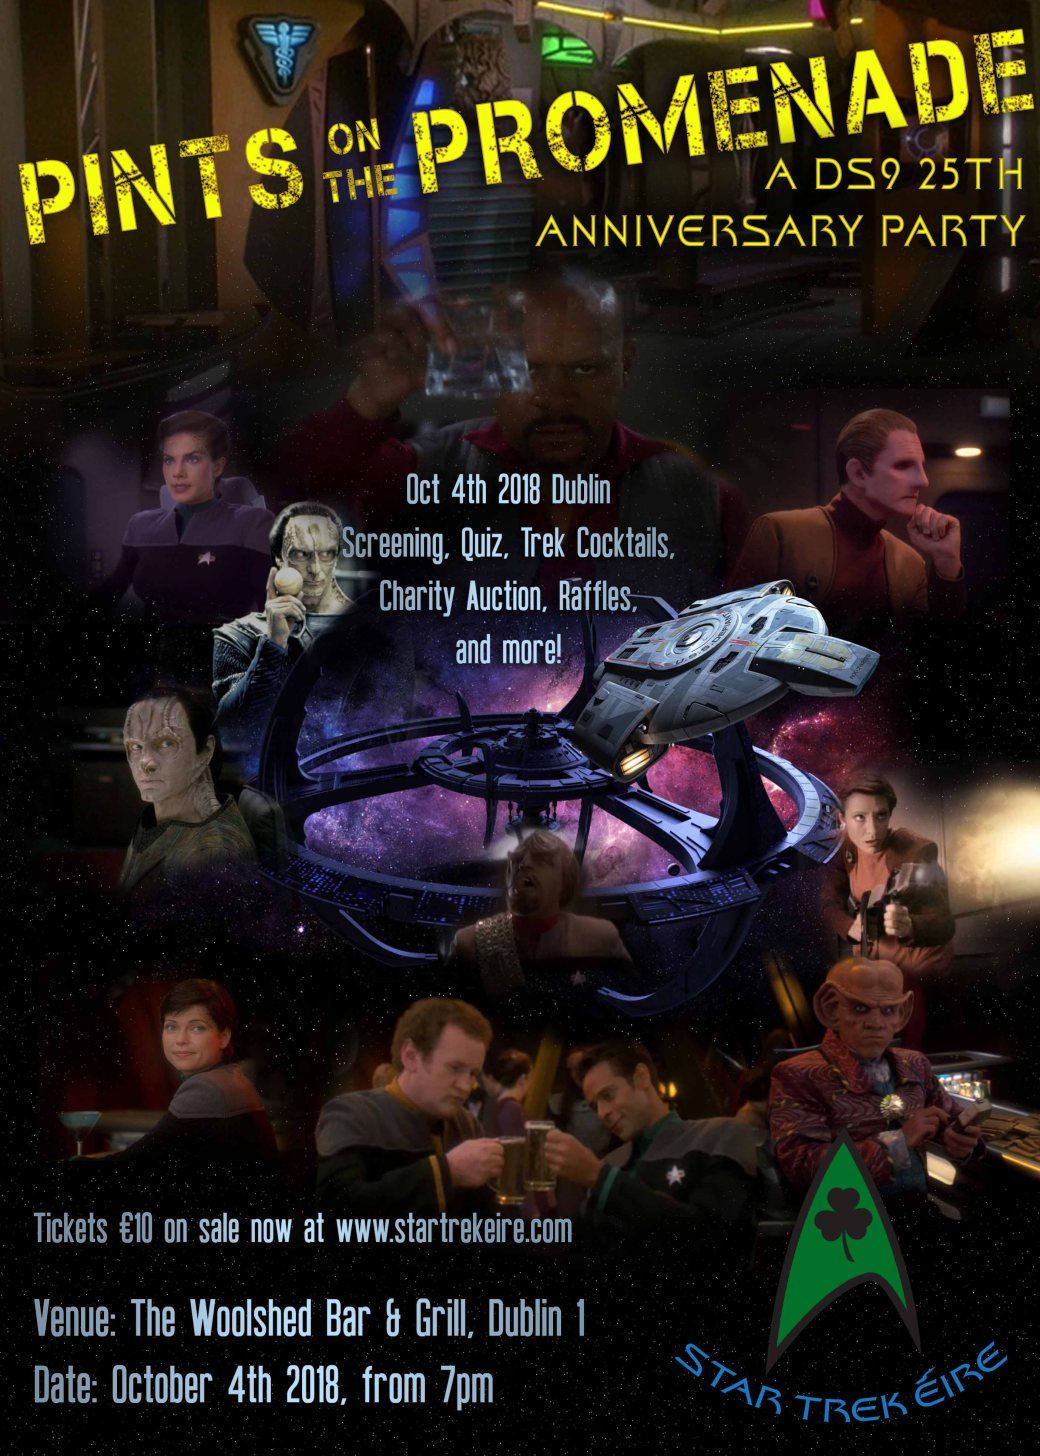 ds9poster7web